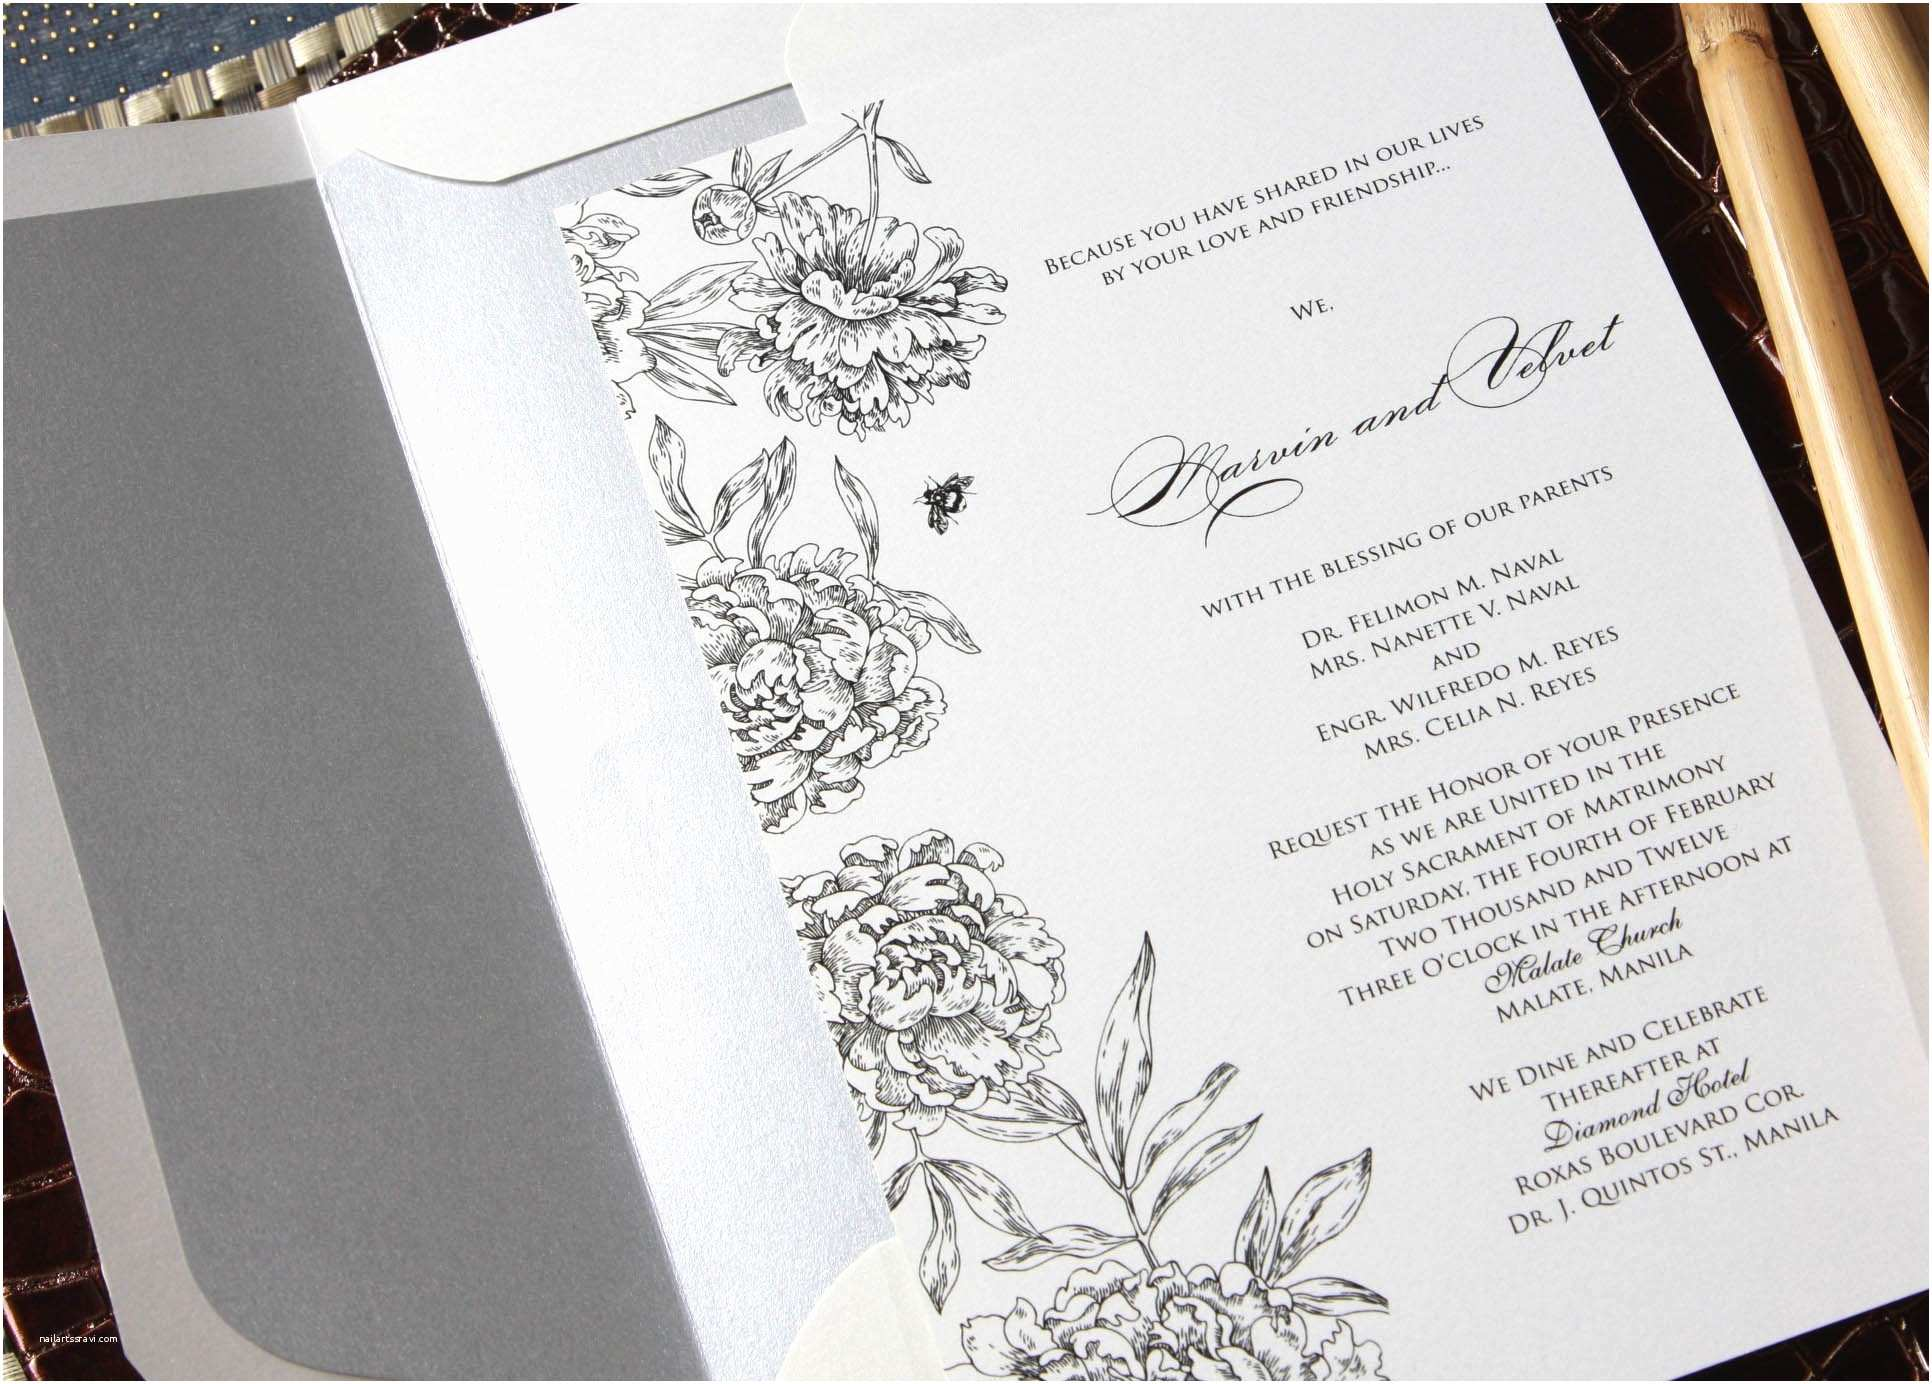 Filipino Wedding Invitation Sample Wedding Invitation Sample In the Philippines Image